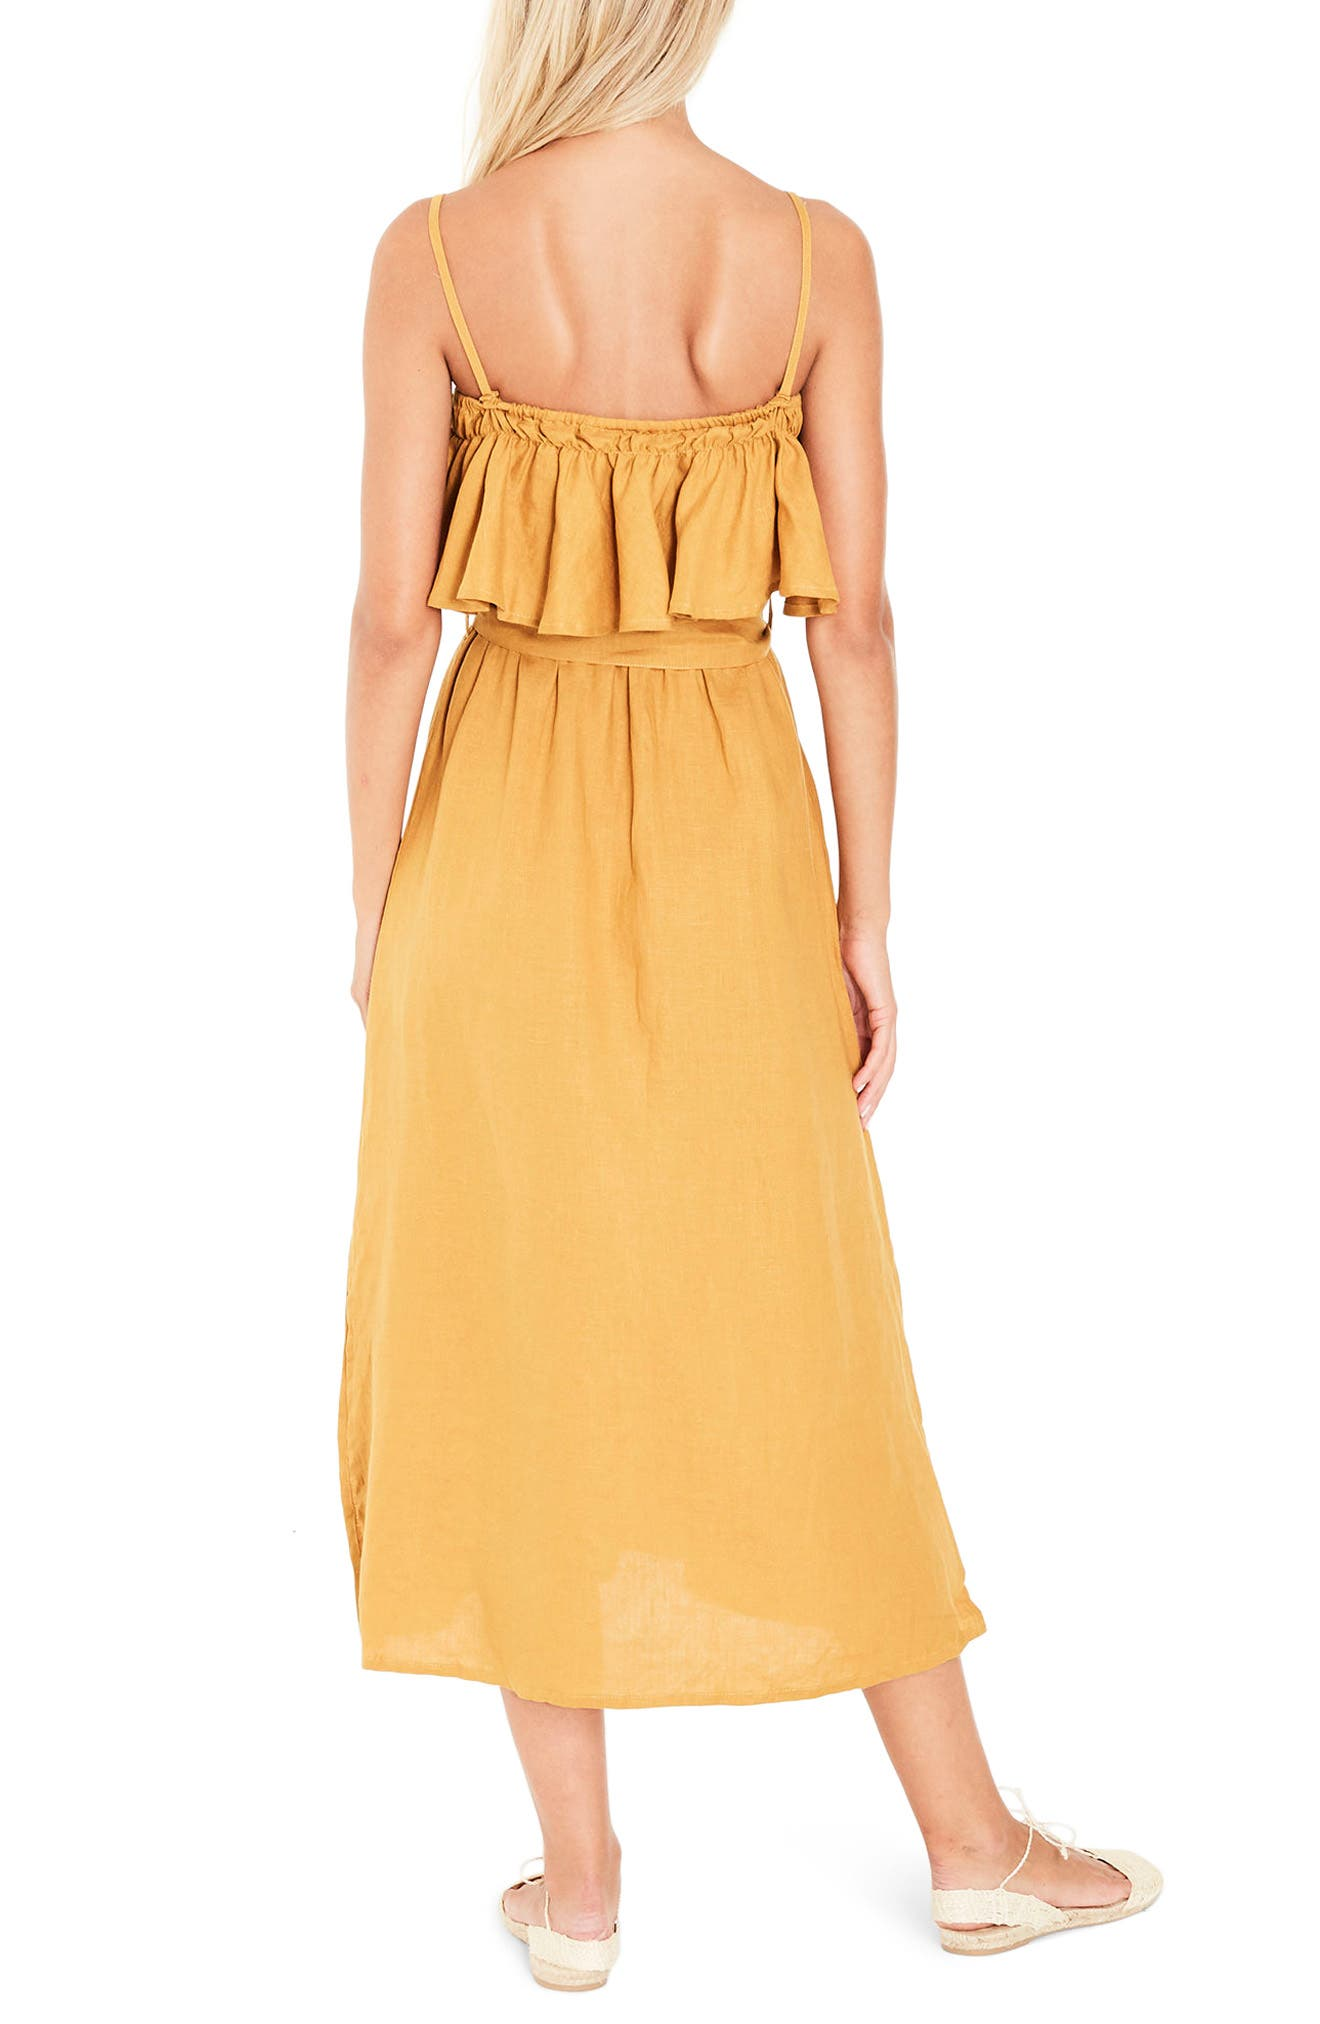 Santo Linen Midi Dress,                             Alternate thumbnail 2, color,                             PLAIN MARIGOLD